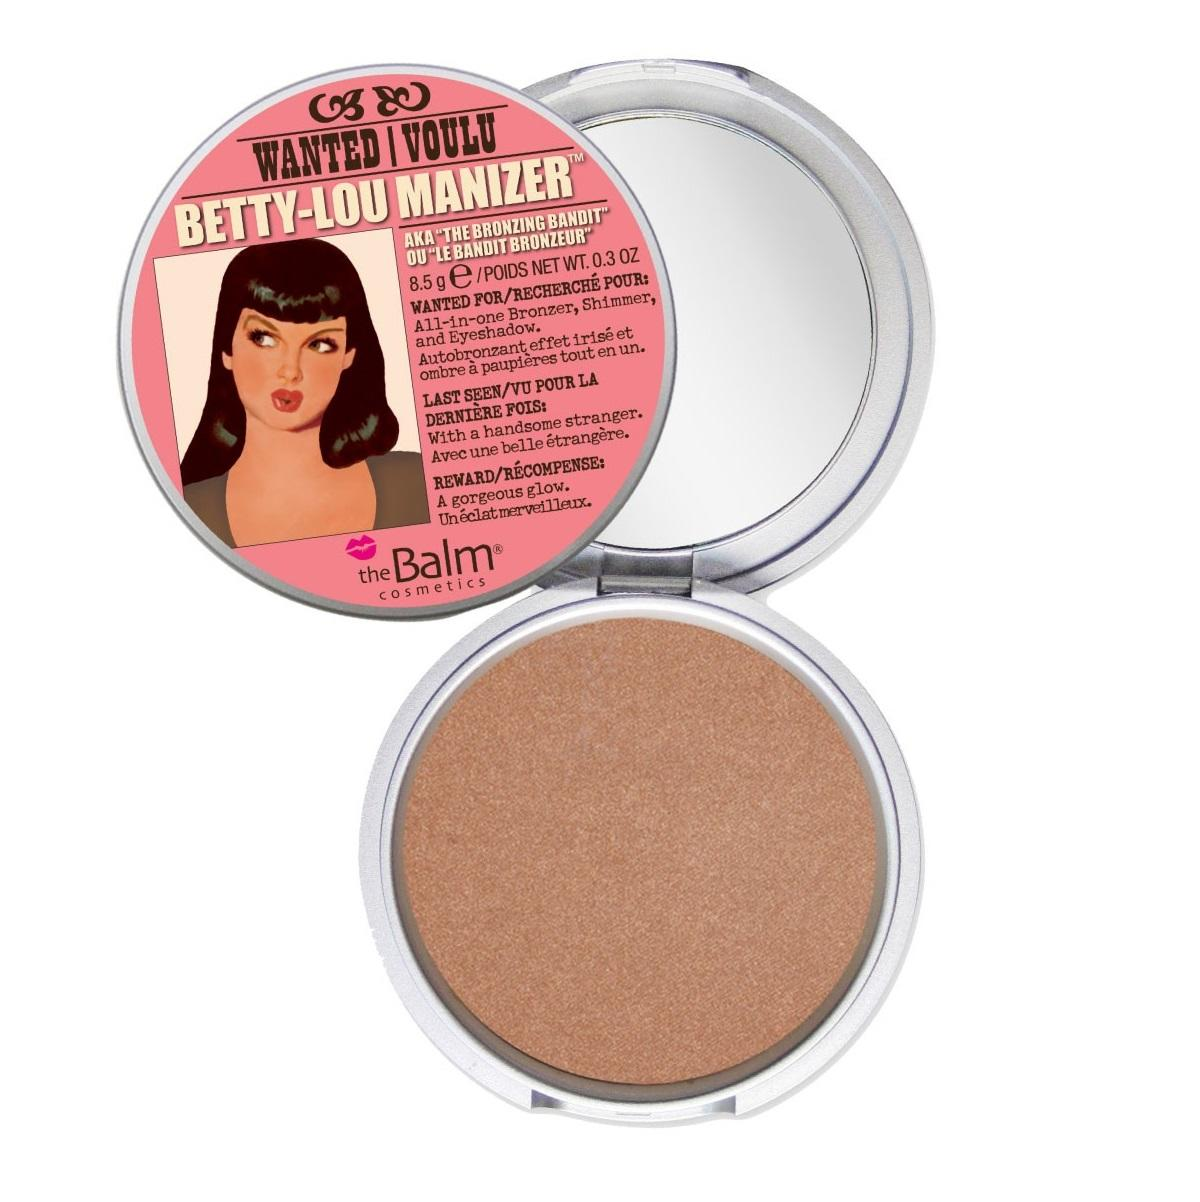 The Balm Bronzing Pressed Powder Betty-Lou Manizer